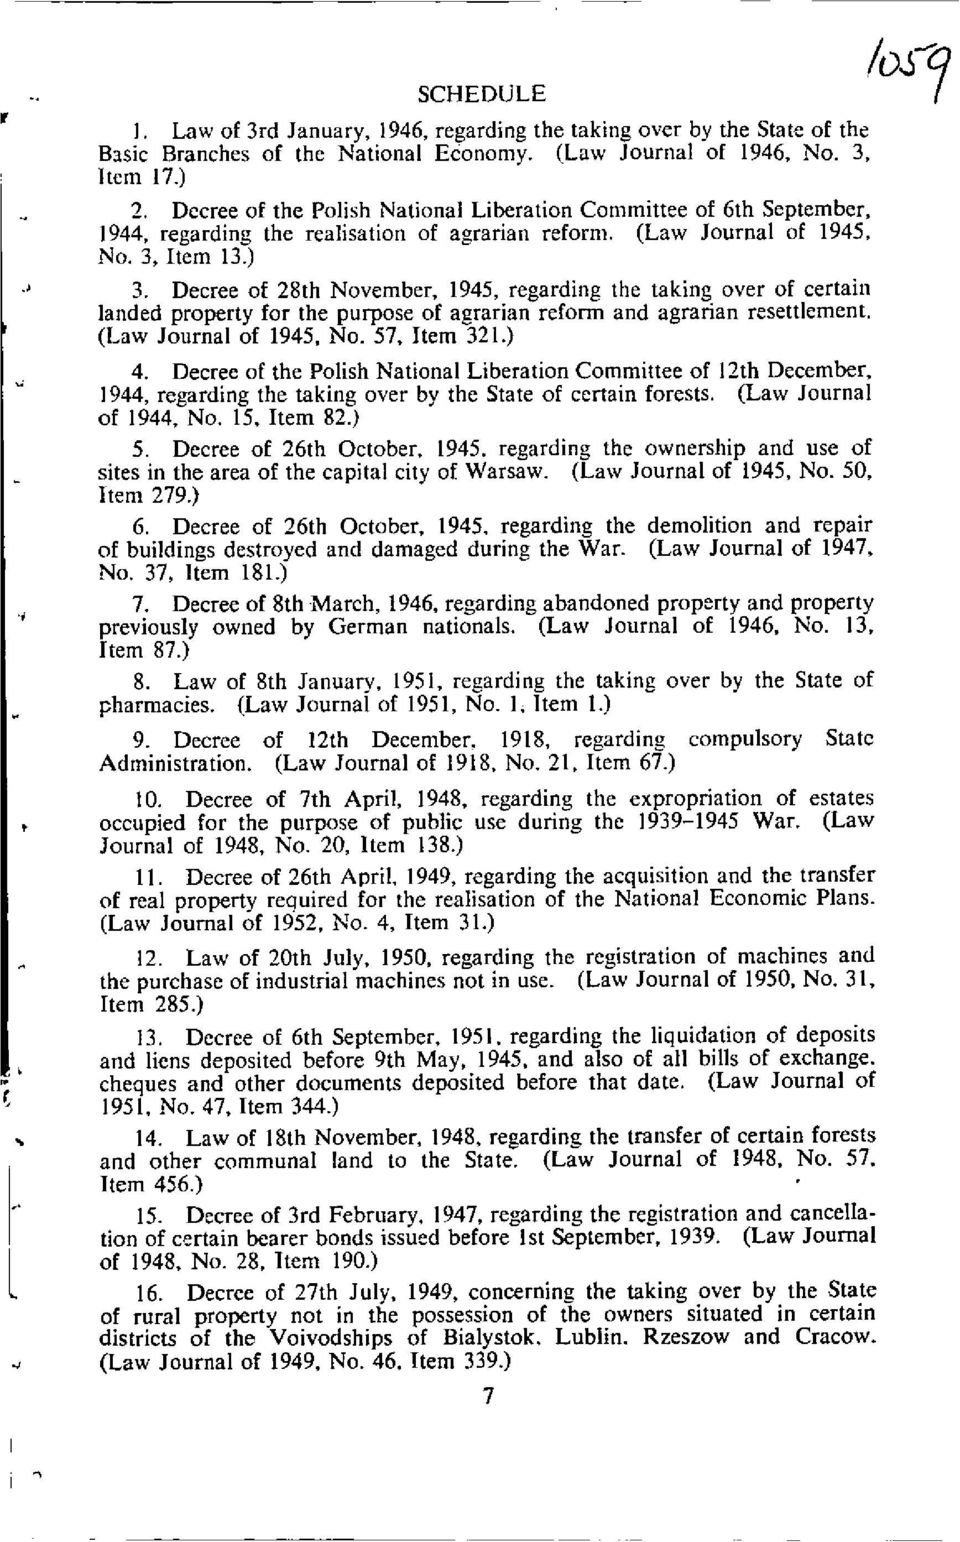 Decree of 28th November, 1945, regarding the taking over of certain landed property for the purpose of agrarian reform and agrarian resettlement. (Law Journal of 1945, No. 57, Item 321.) 4.